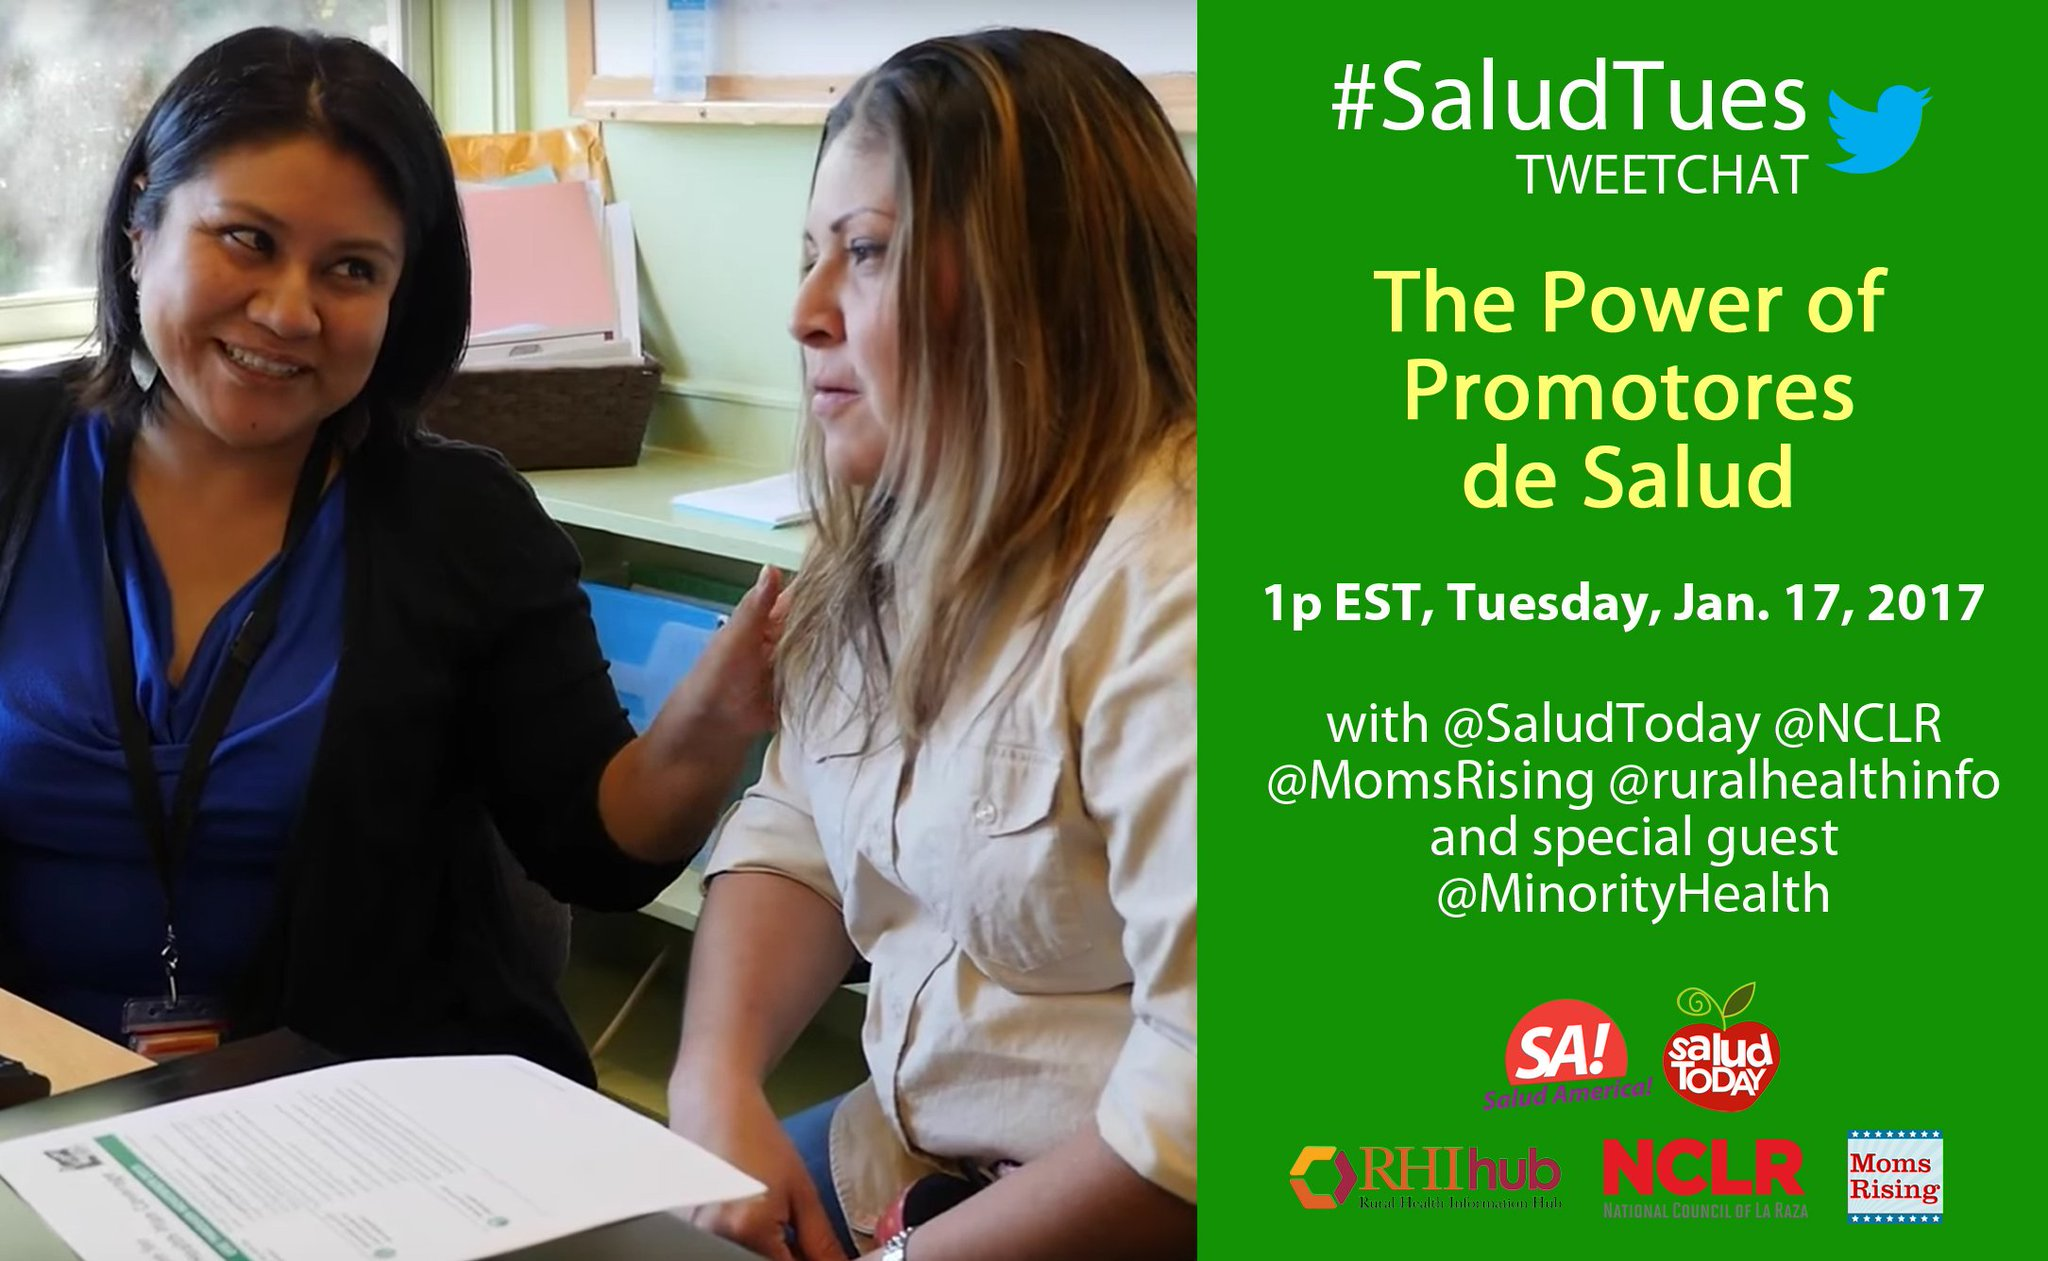 Thumbnail for The Power of Promotores de Salud